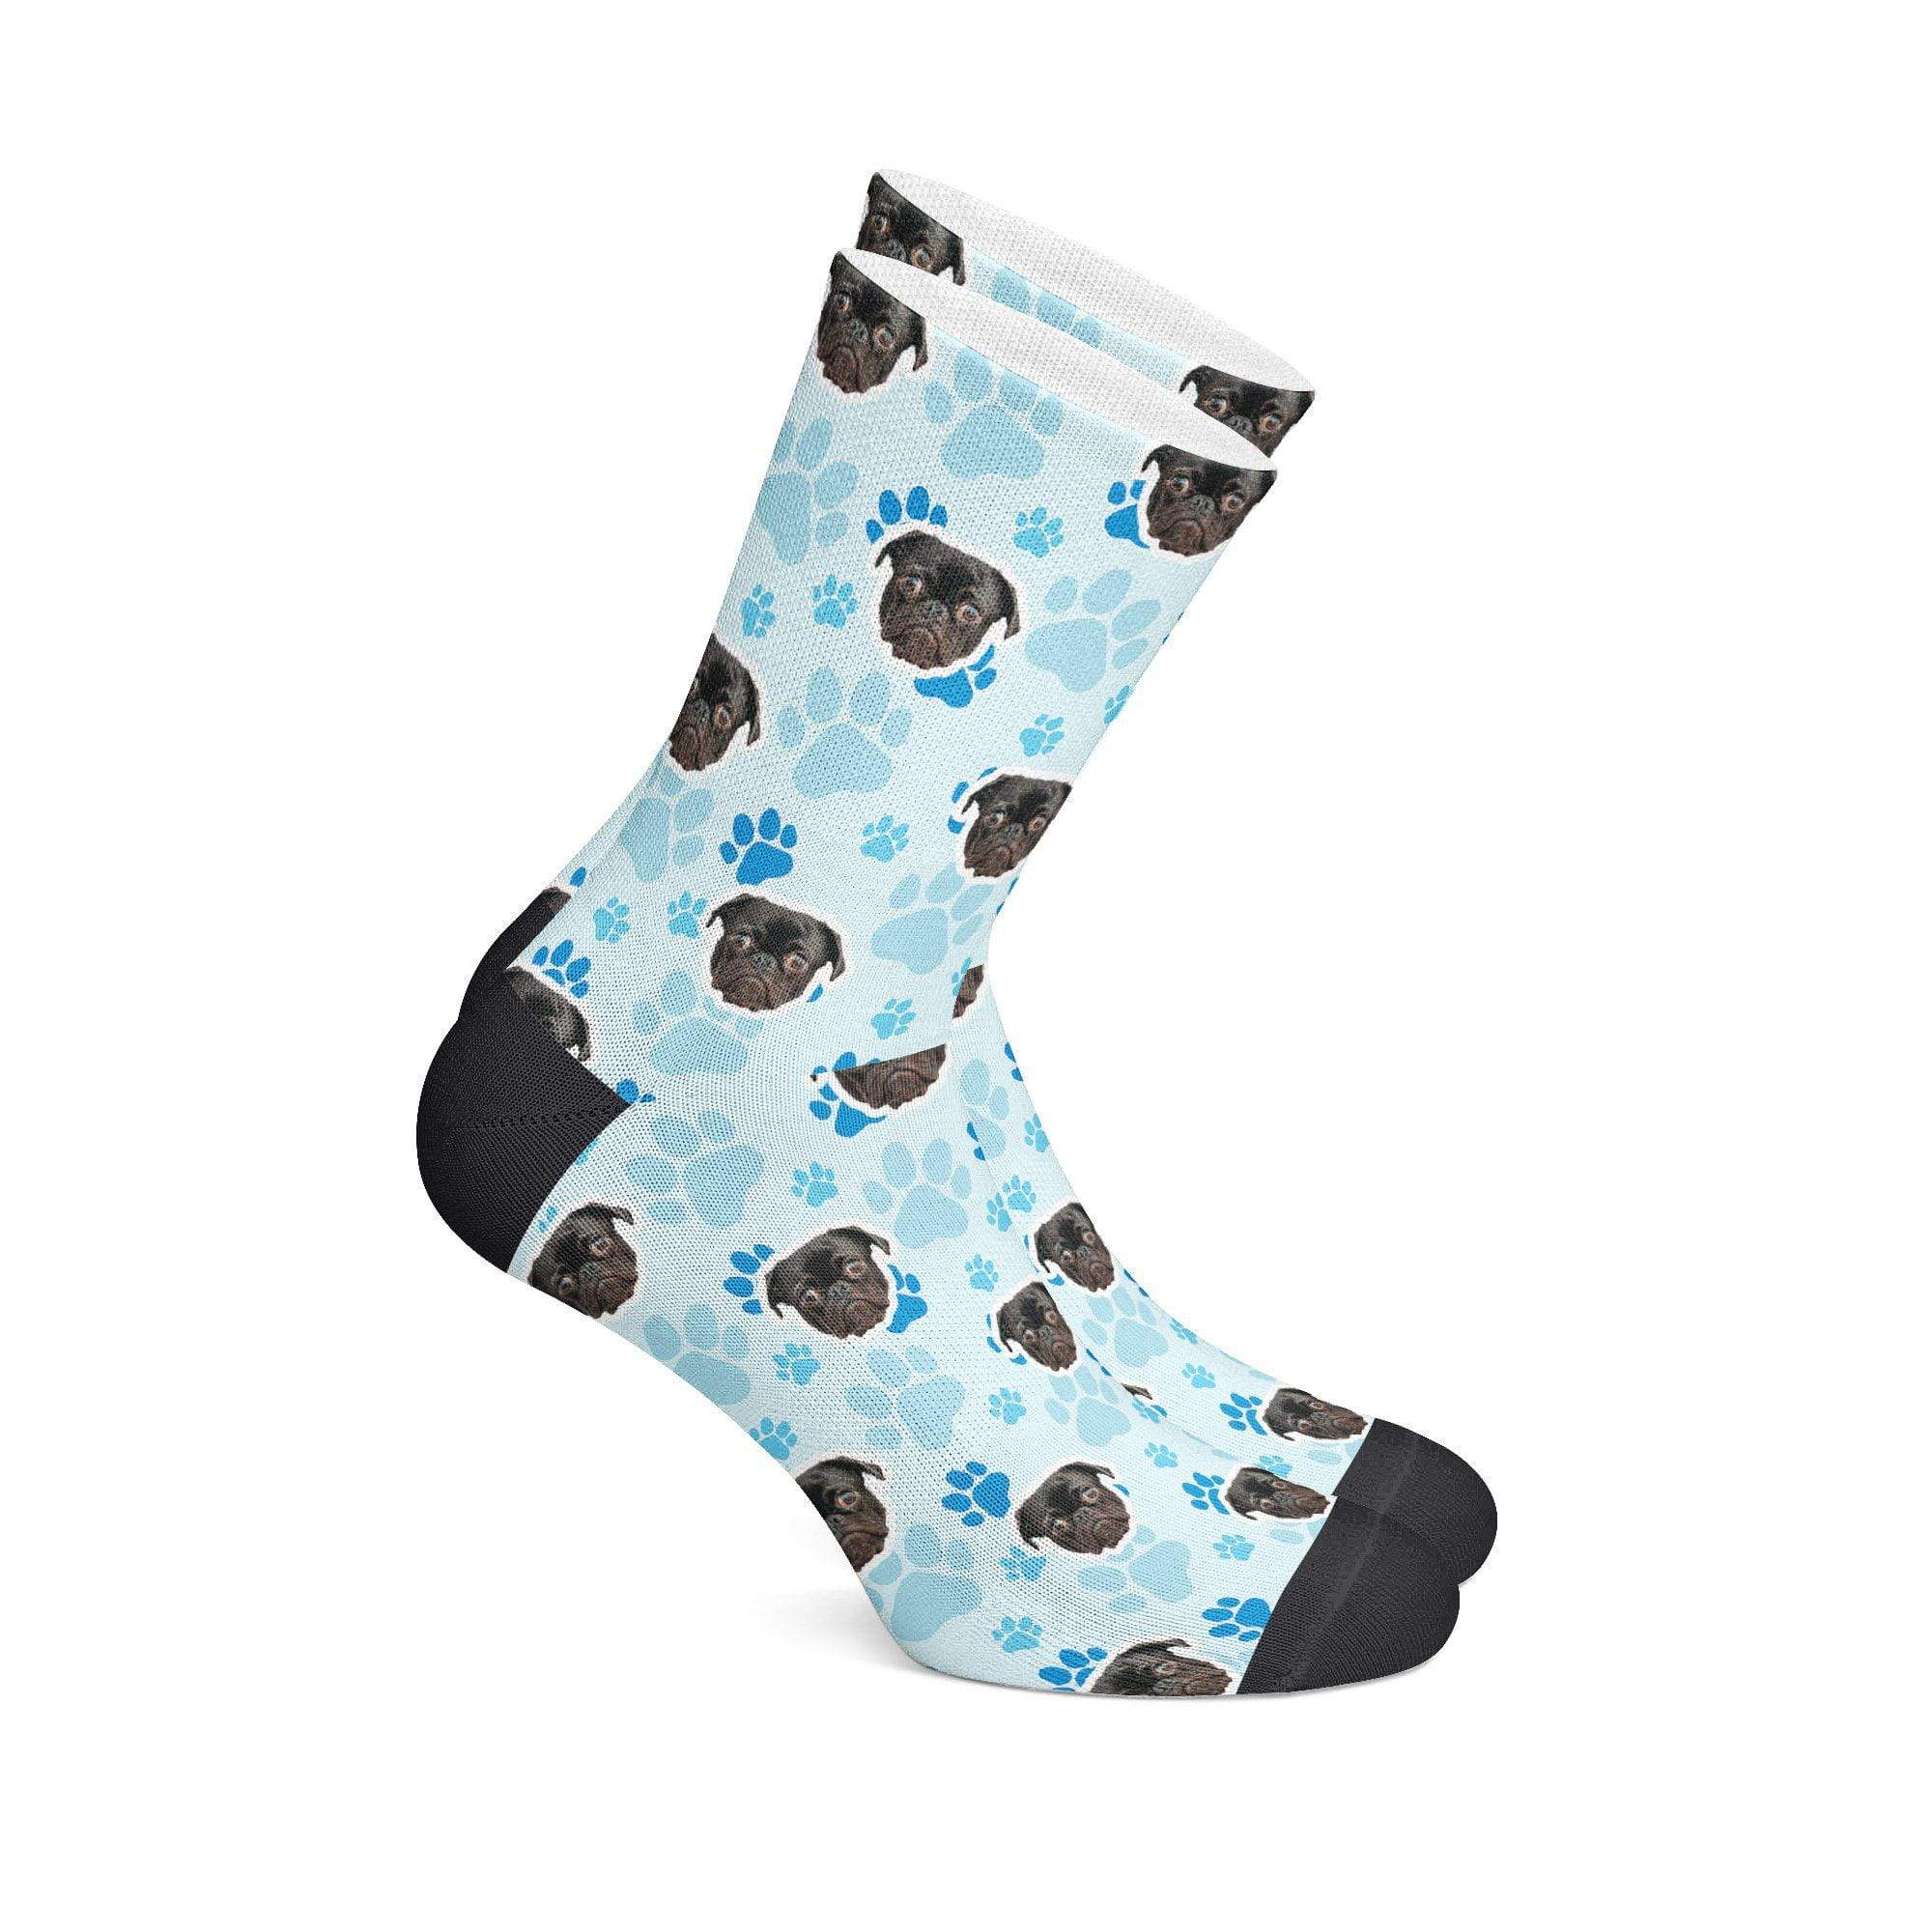 GiftForPet S (Men's 5-6/ Women's 4-8) / Blue Paws Giveaway Paws Socks Custom Portrait - Personalized Gift